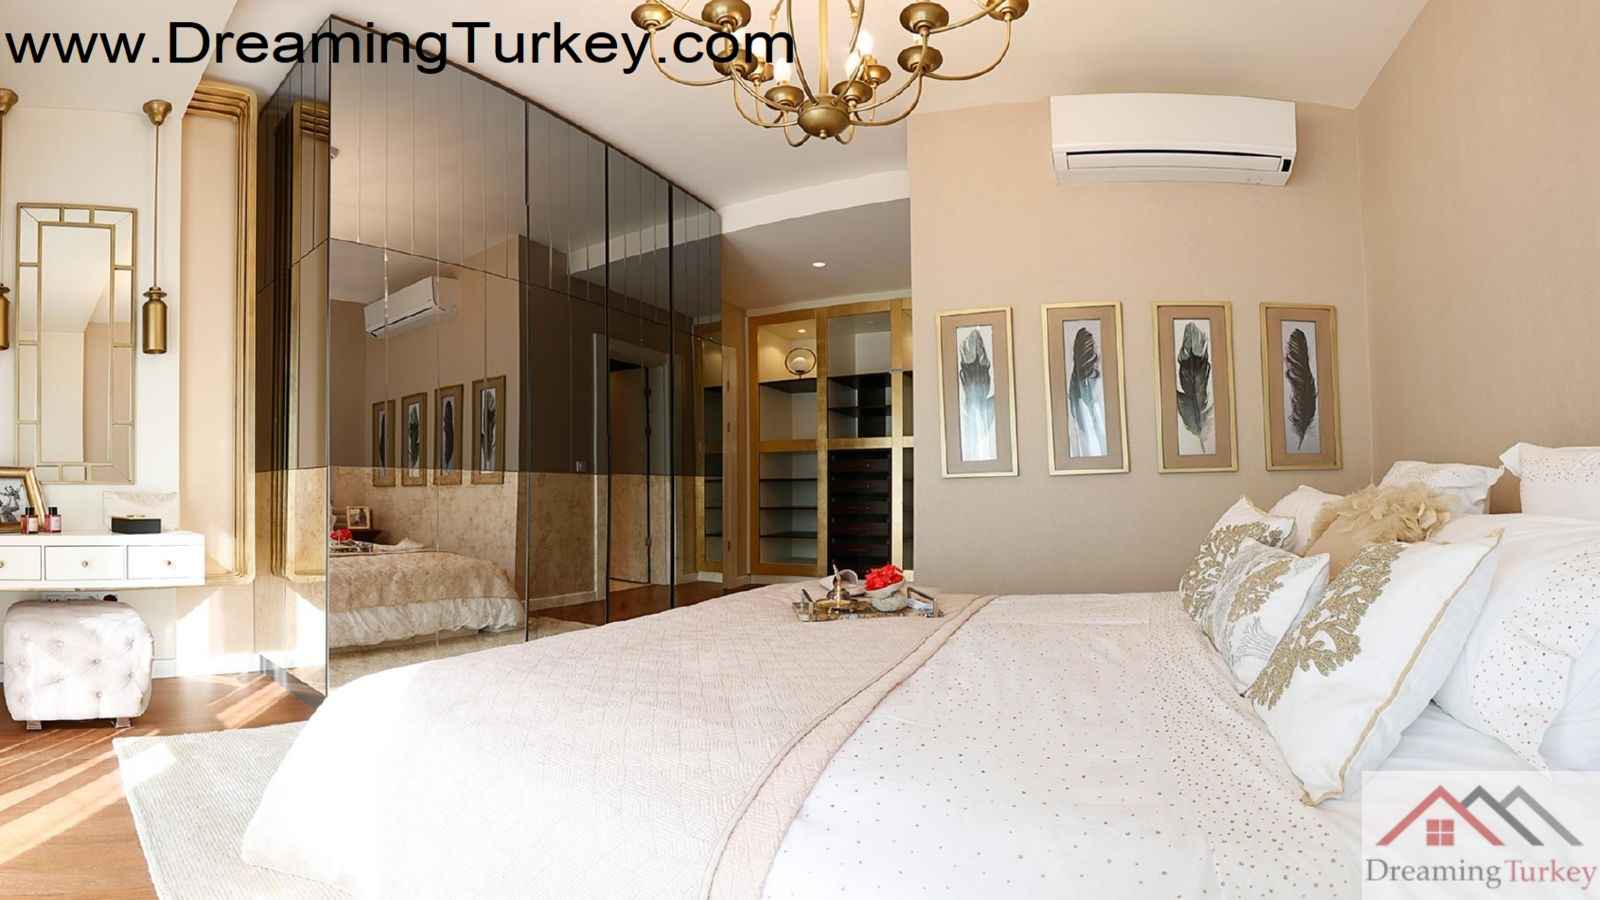 3-Bedroom Residence in a Luxury Complex with an Artificial Lake